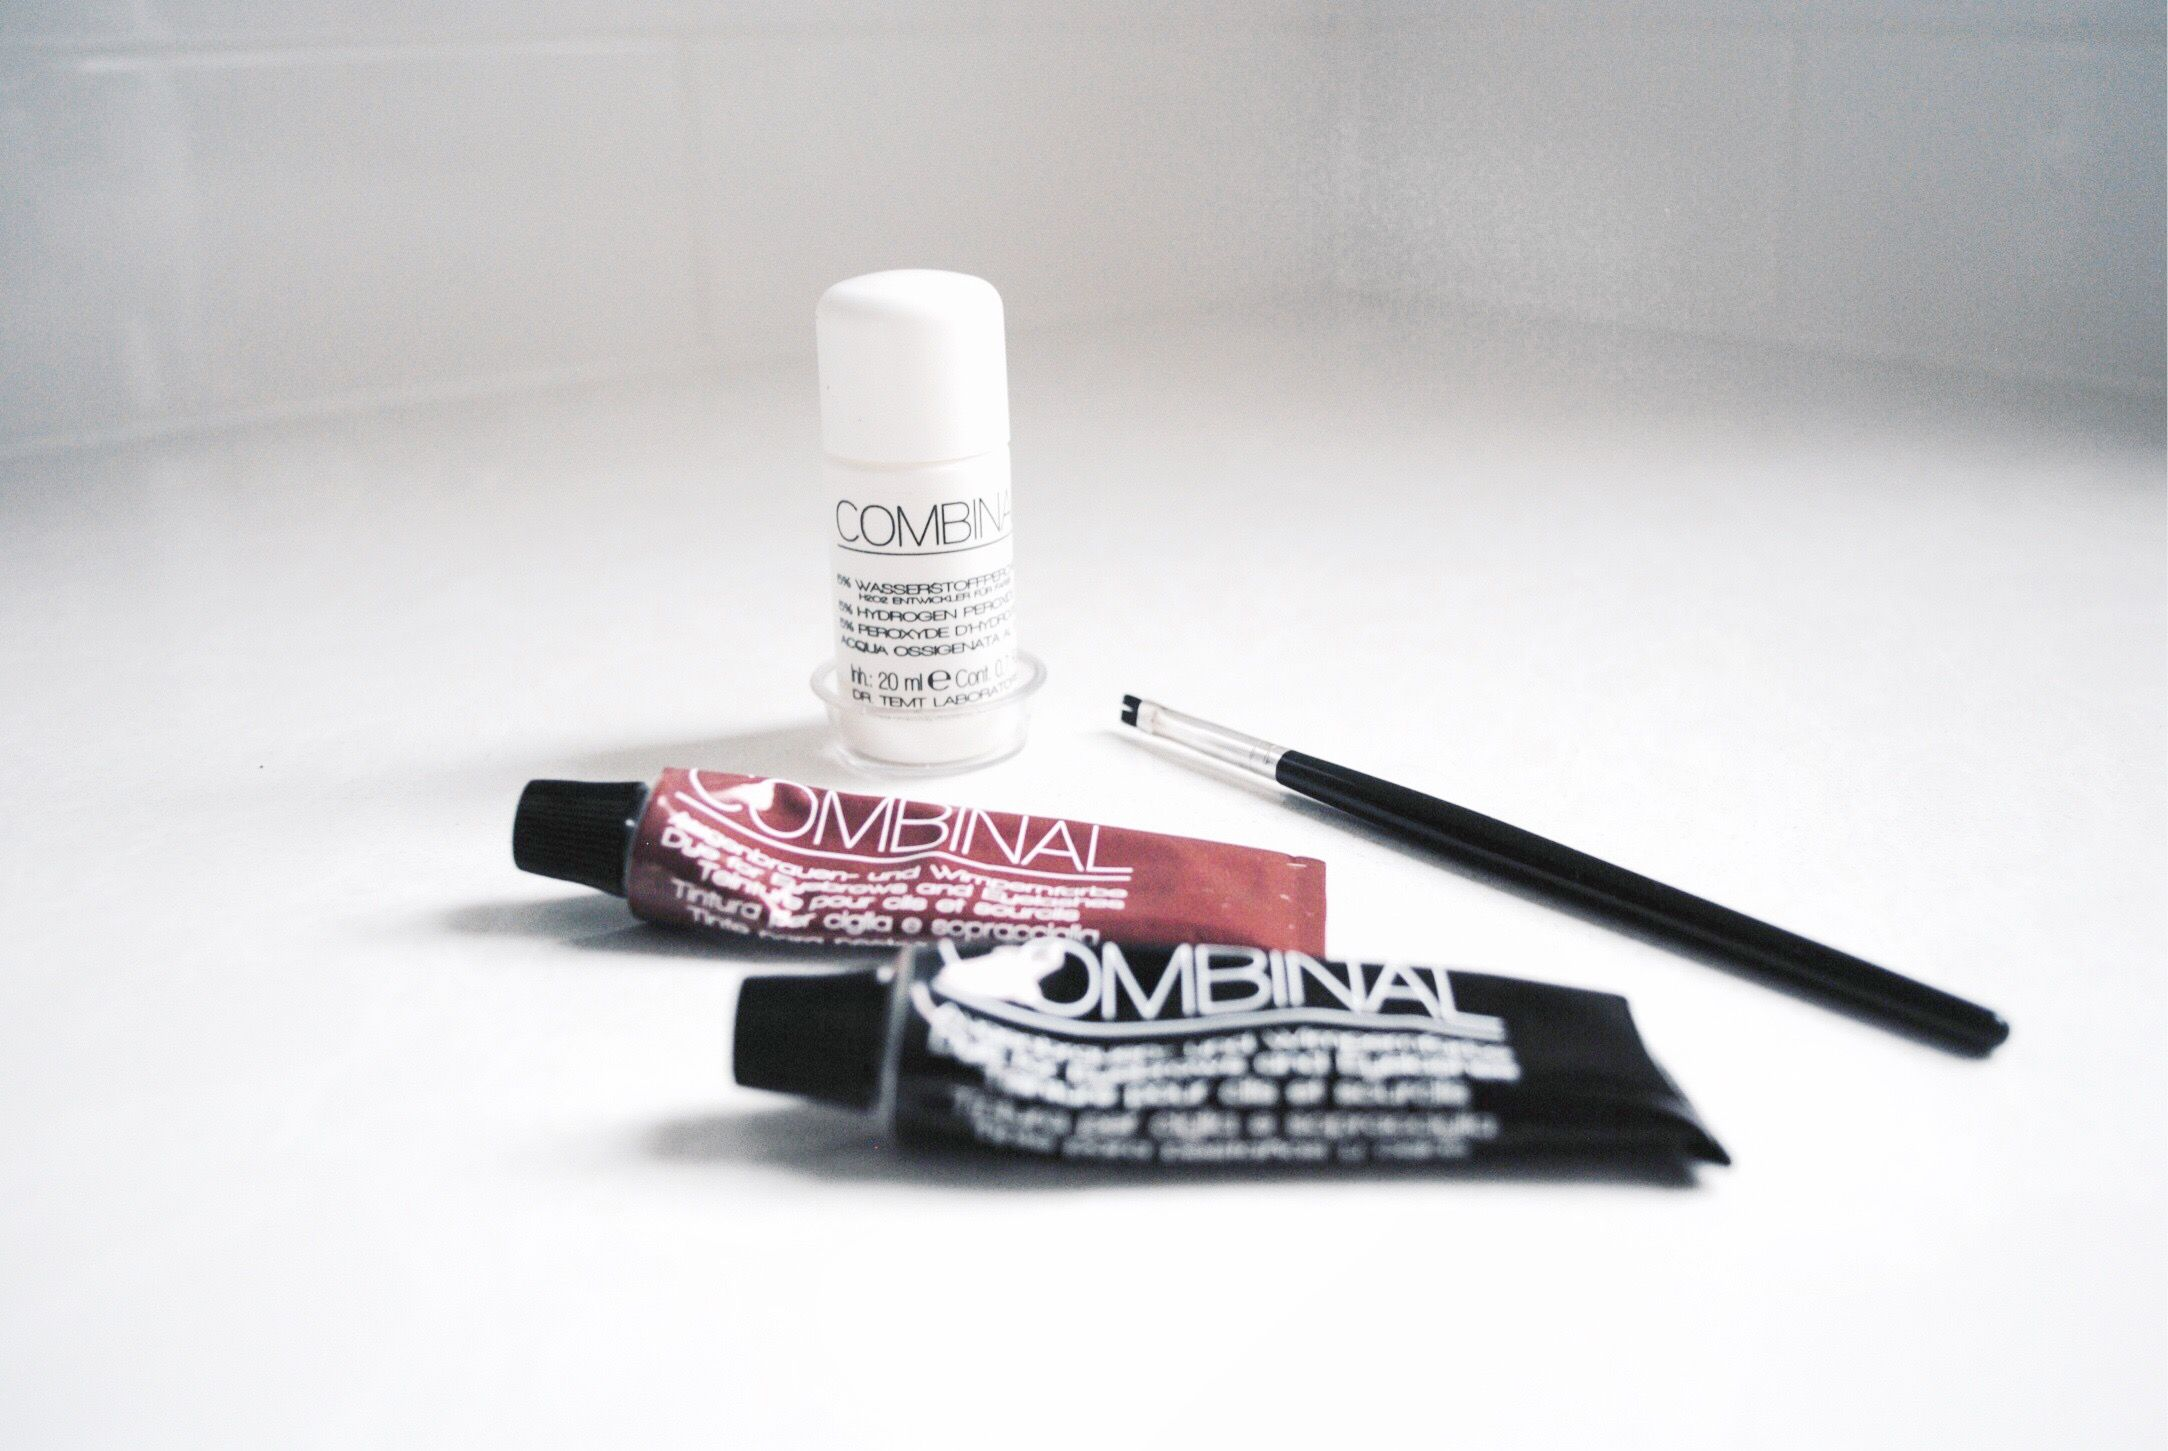 Combinal Eye Brow Tinting Kit - Jenna Fletcher's Top 5 Beauty Products from The Getting Ready Report Beauty Interview  www.gettingreadyreport.com